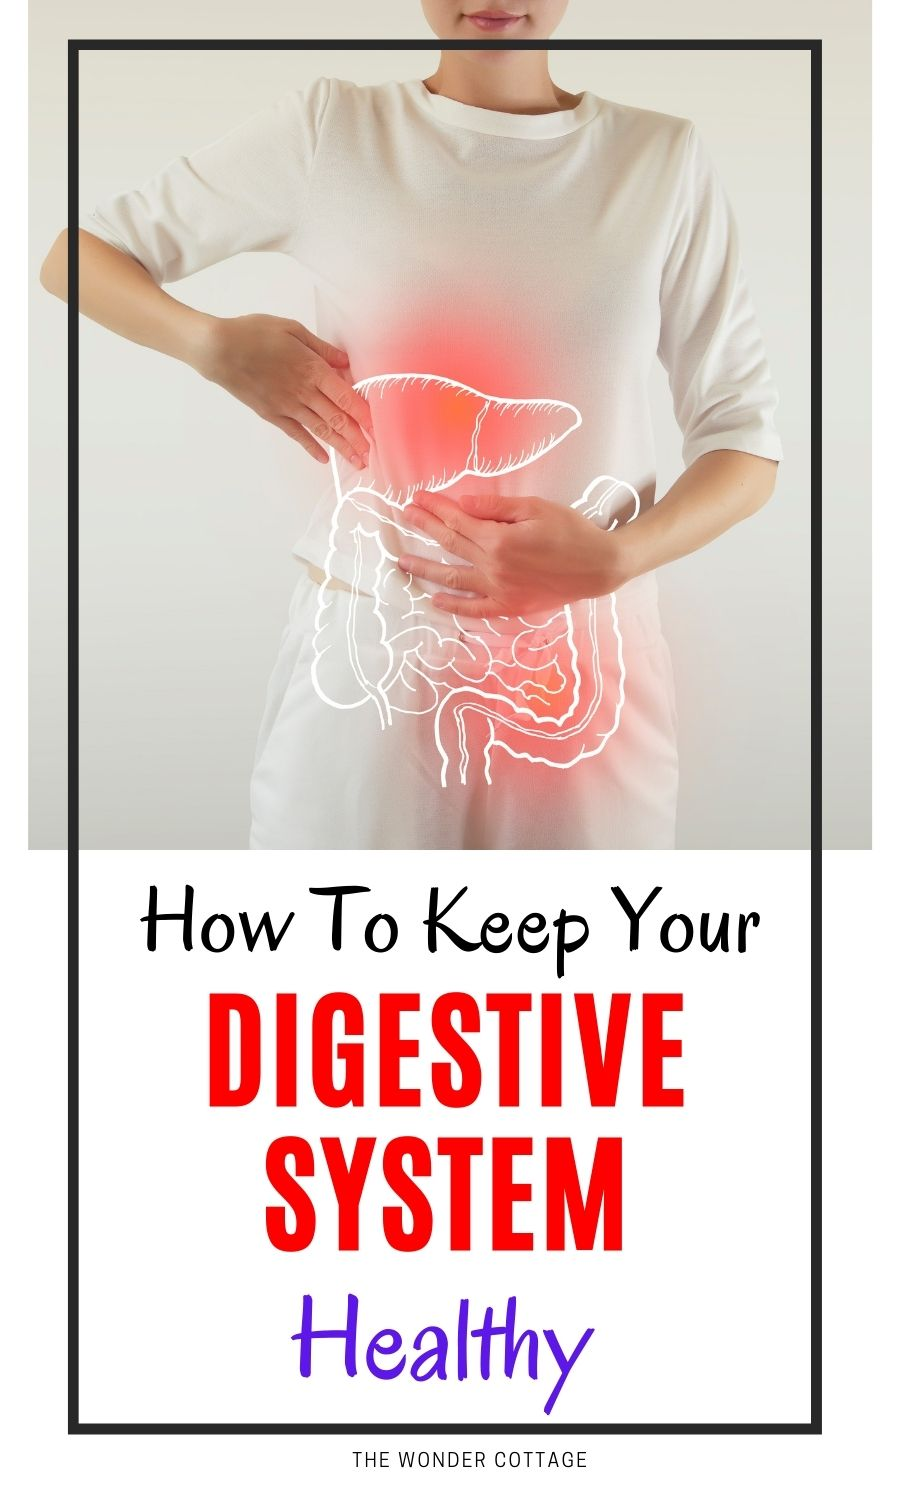 How To Keep Your Digestive System Healthy